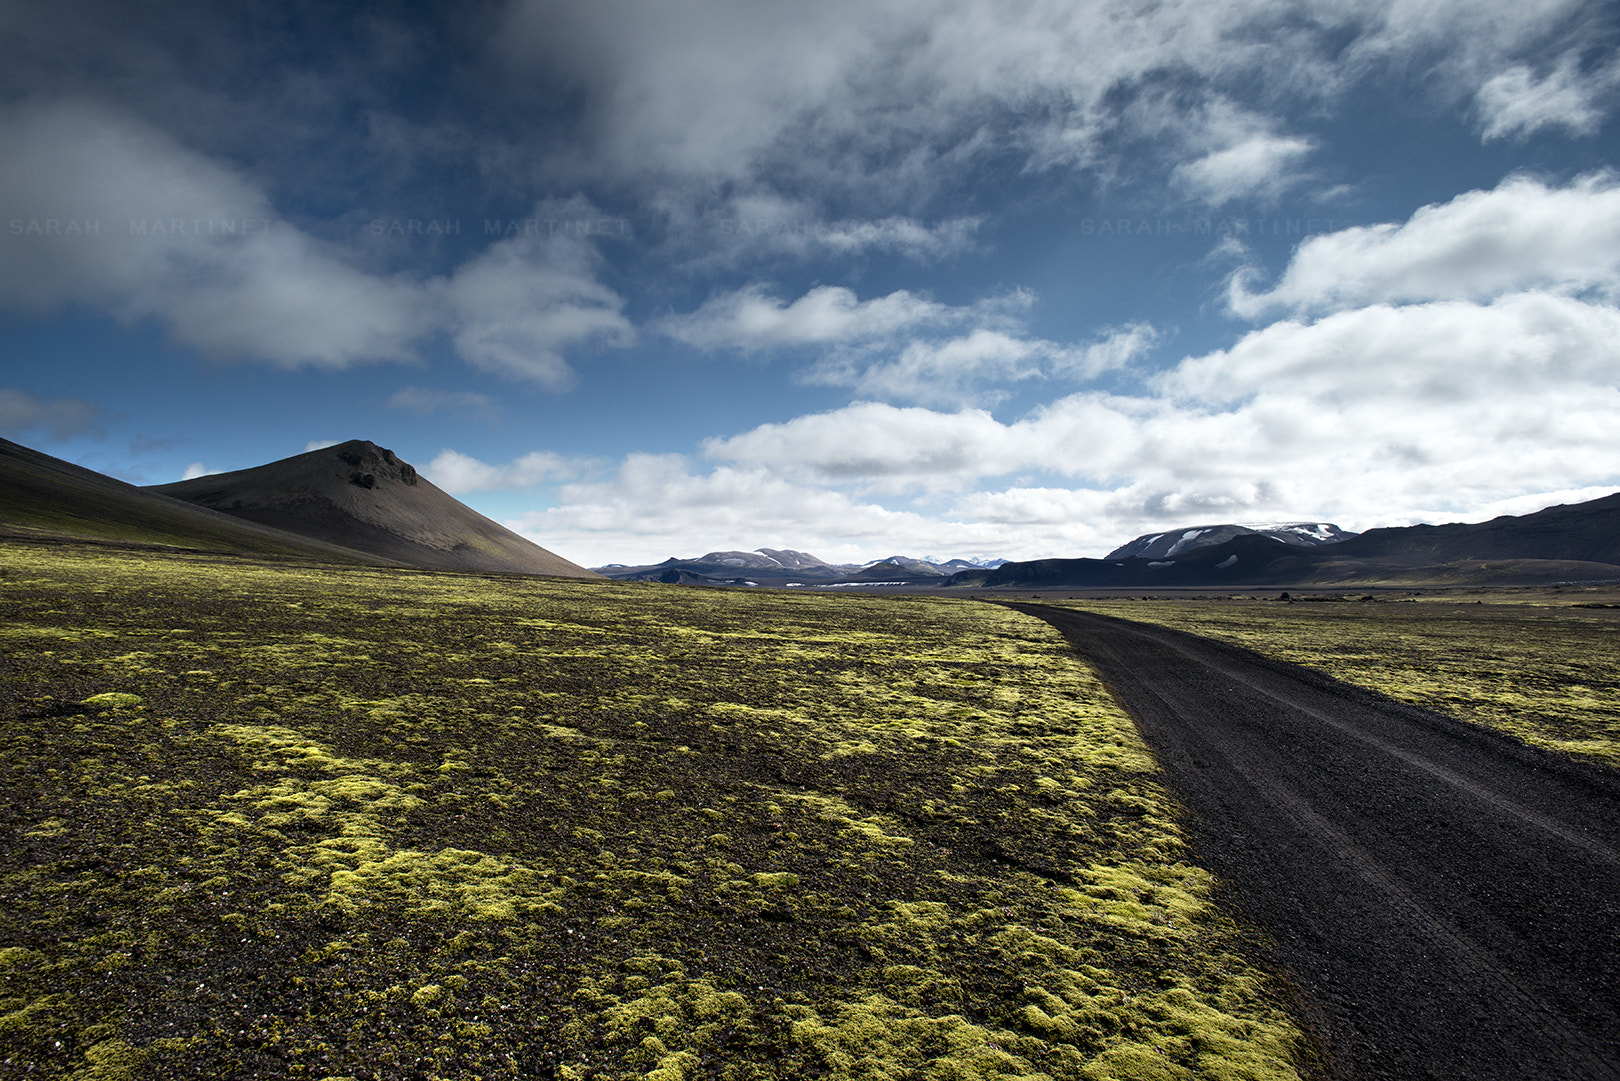 Photograph The Road by Sarah Martinet on 500px